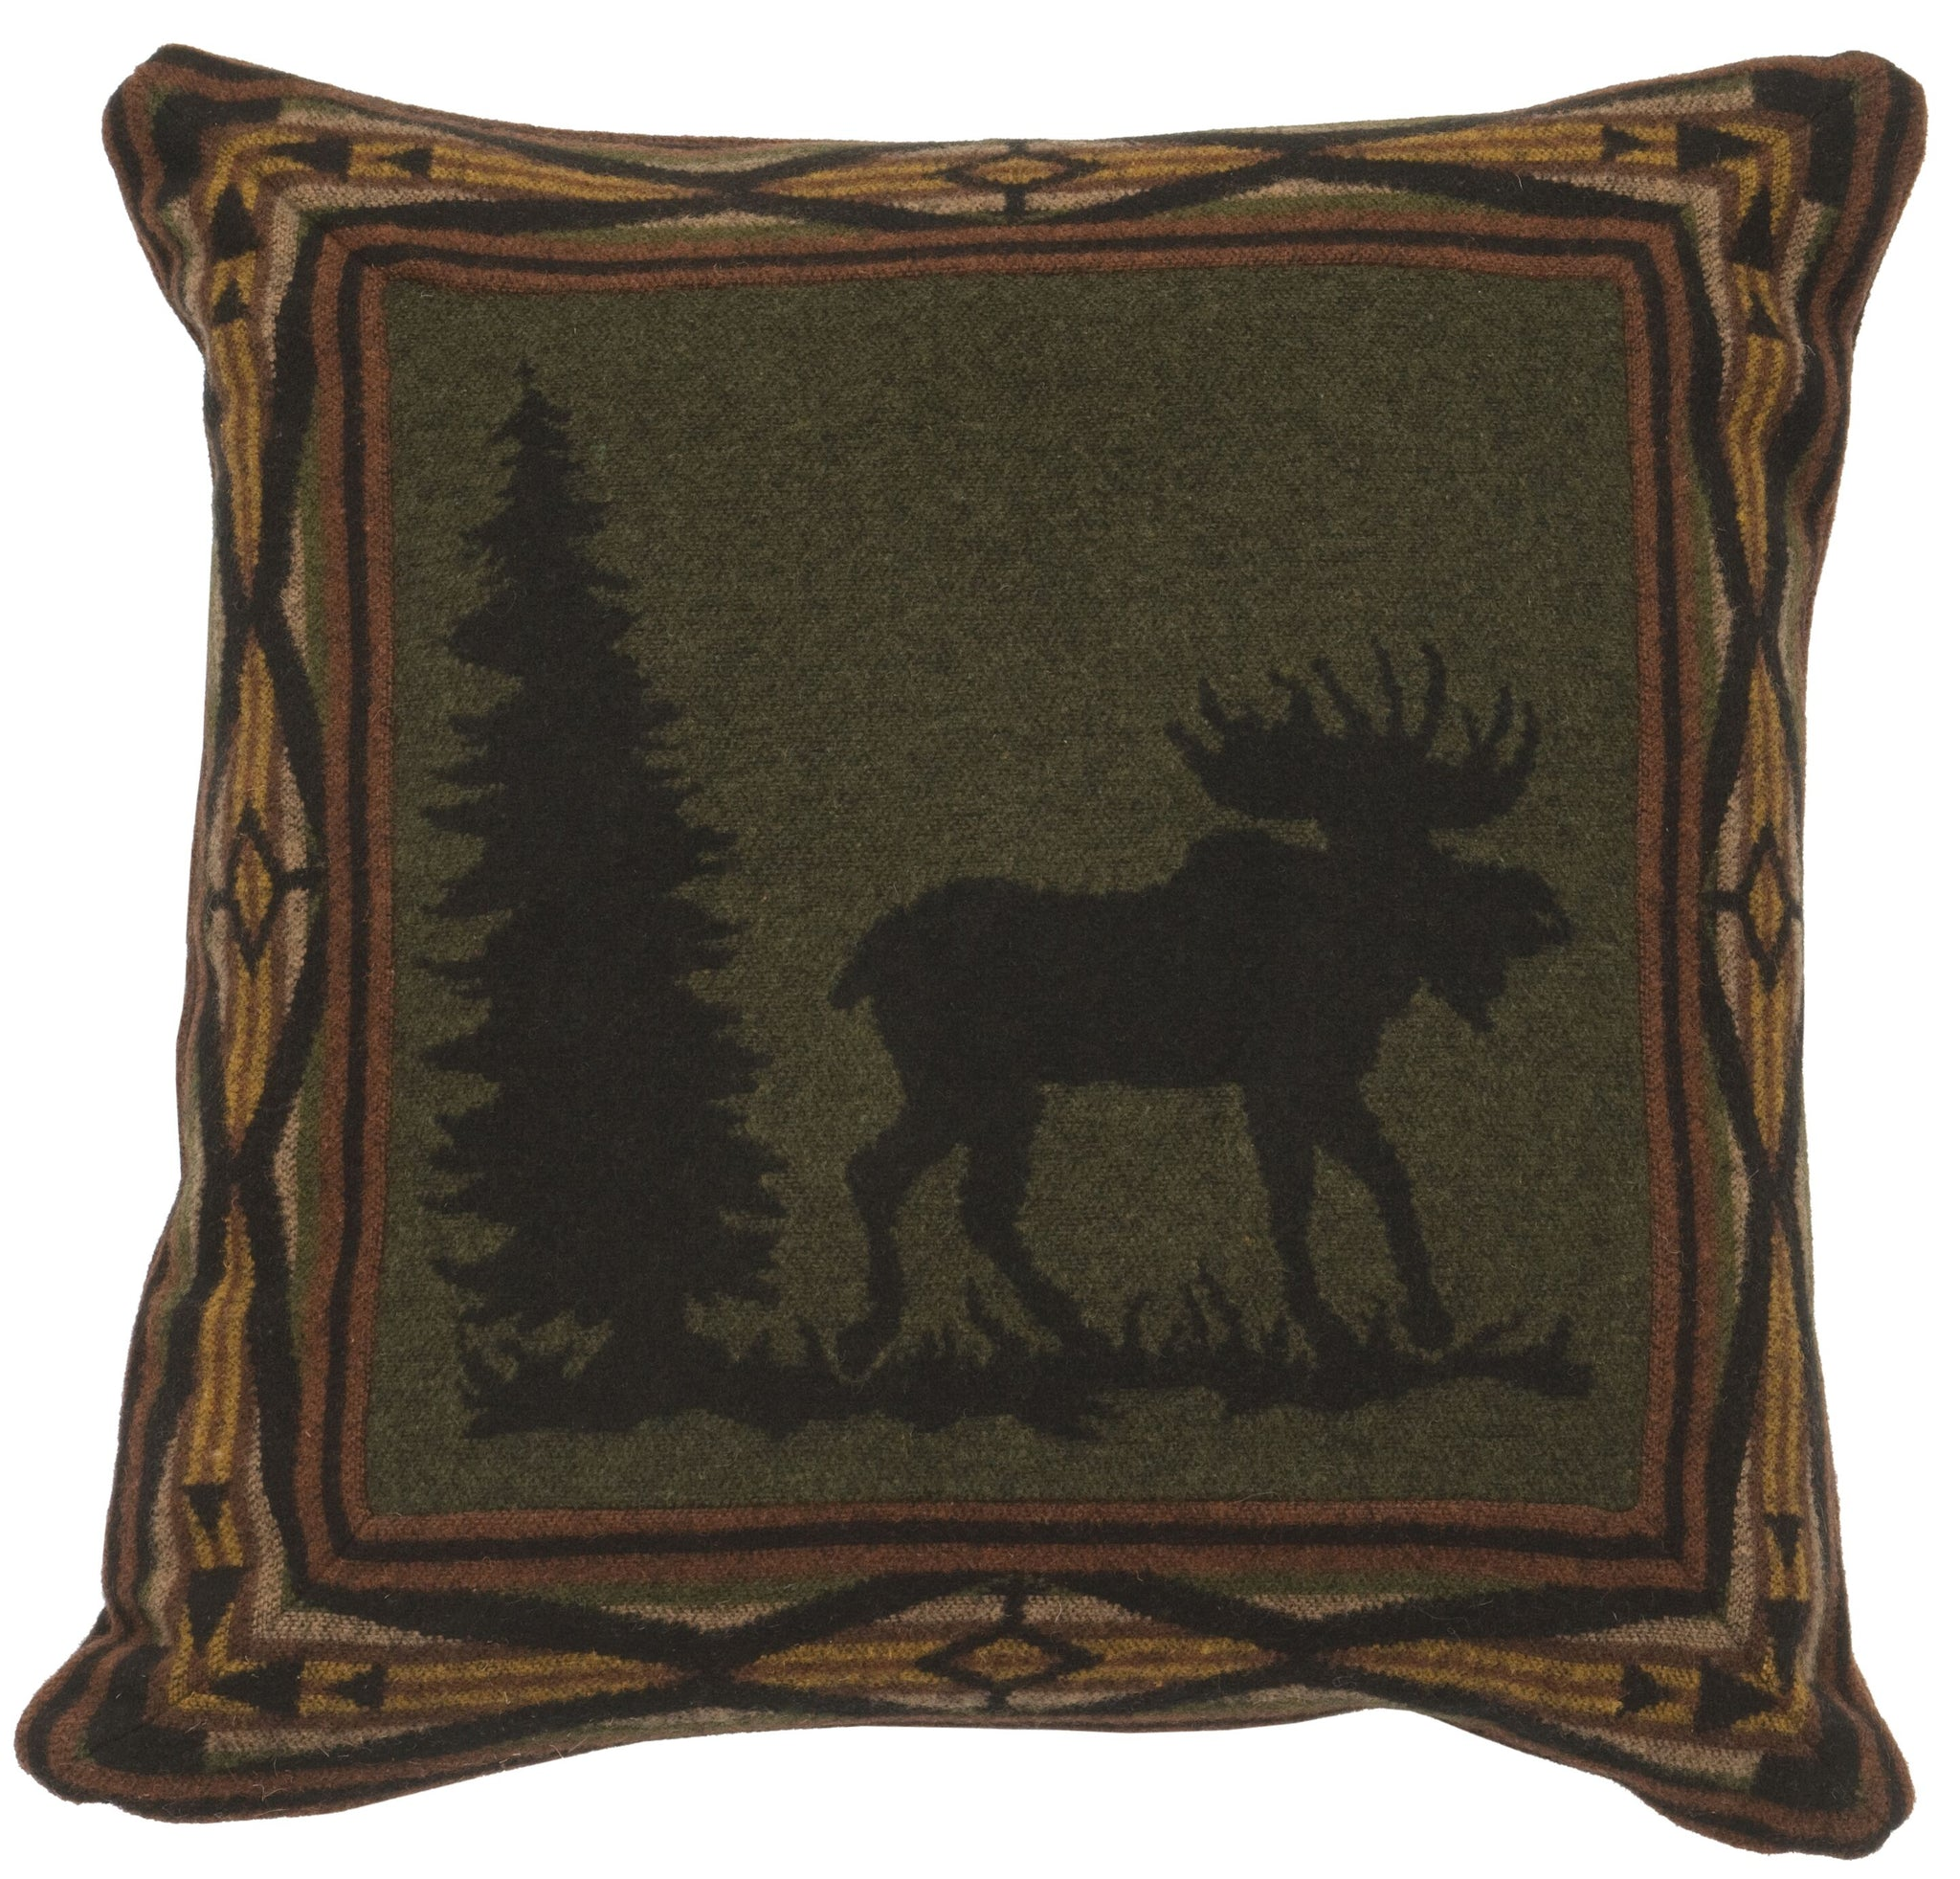 Moose 1 Eurosham Wooded River - unique linens online